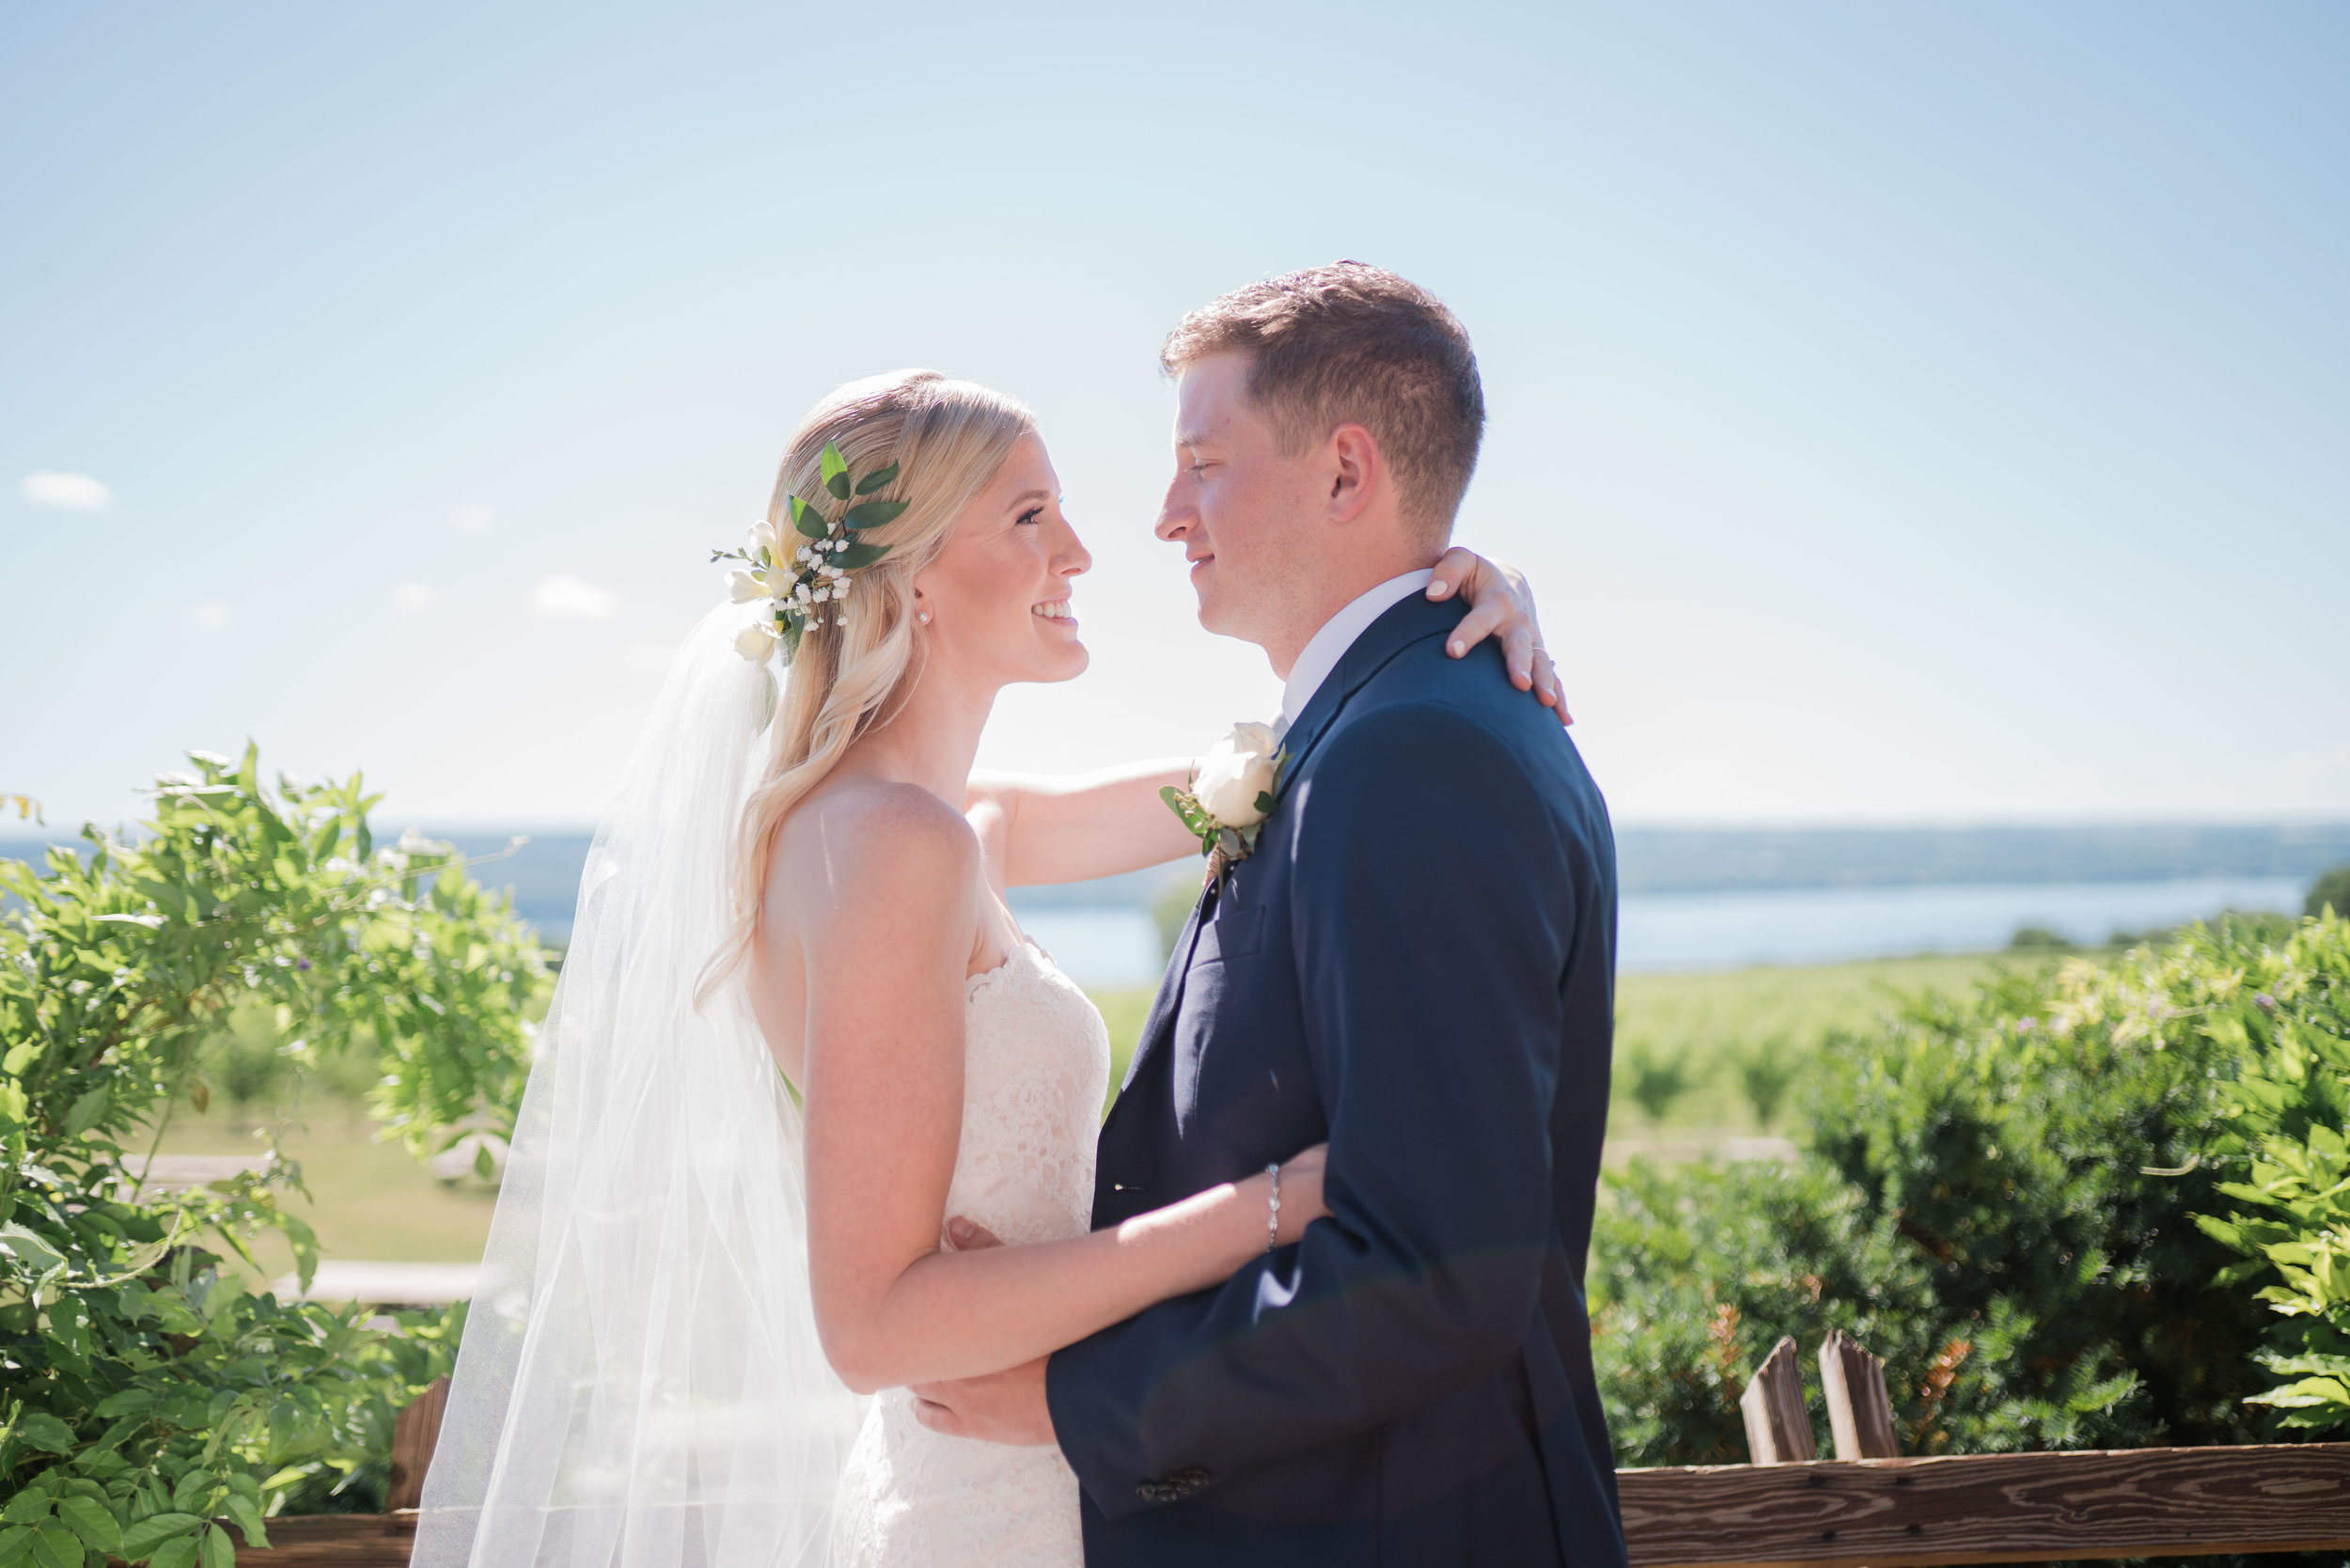 Wedding Photography at Wagner Vineyards Ginny Lee Cafe Finger Lakes by Stefan Ludwig Photography-37.jpg